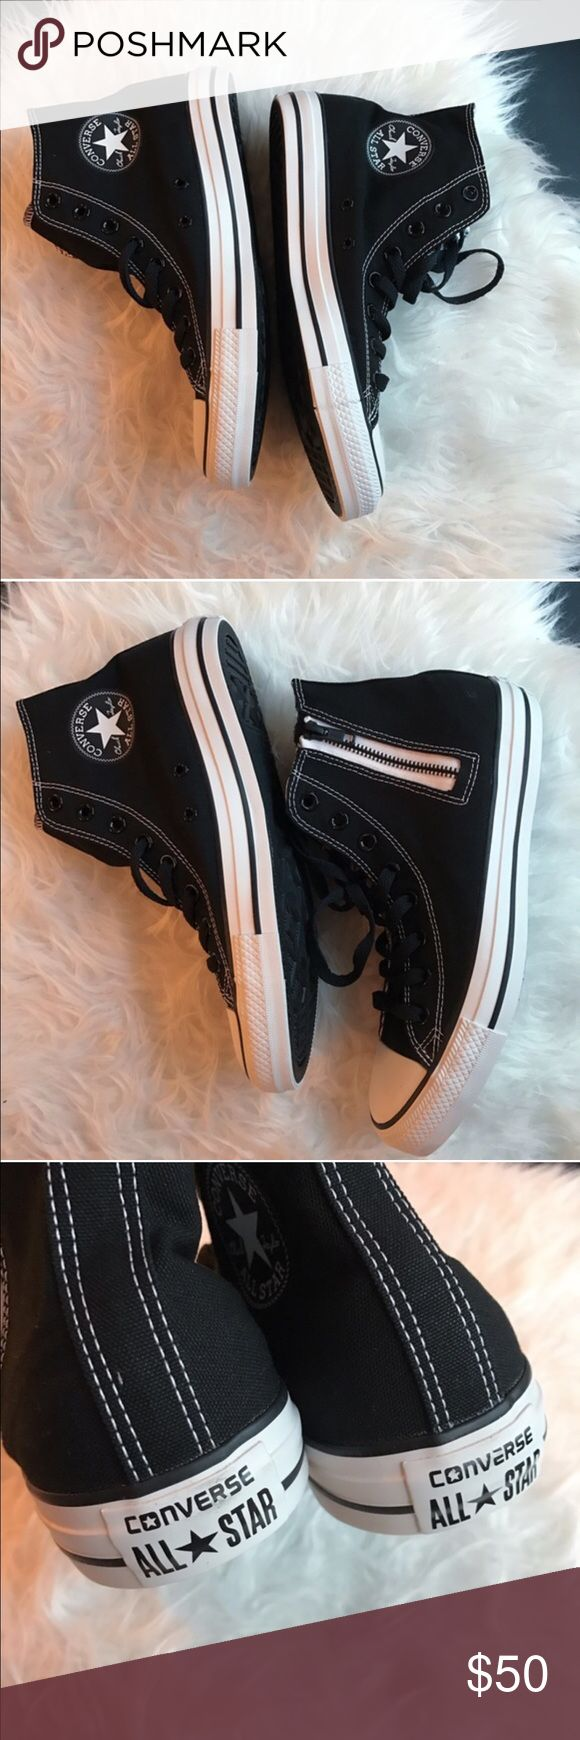 NIB Converse Chuck Taylor high tip sneakers Brand new in box. Black and white Chuck Taylor side zip high top sneakers Converse Shoes Sneakers